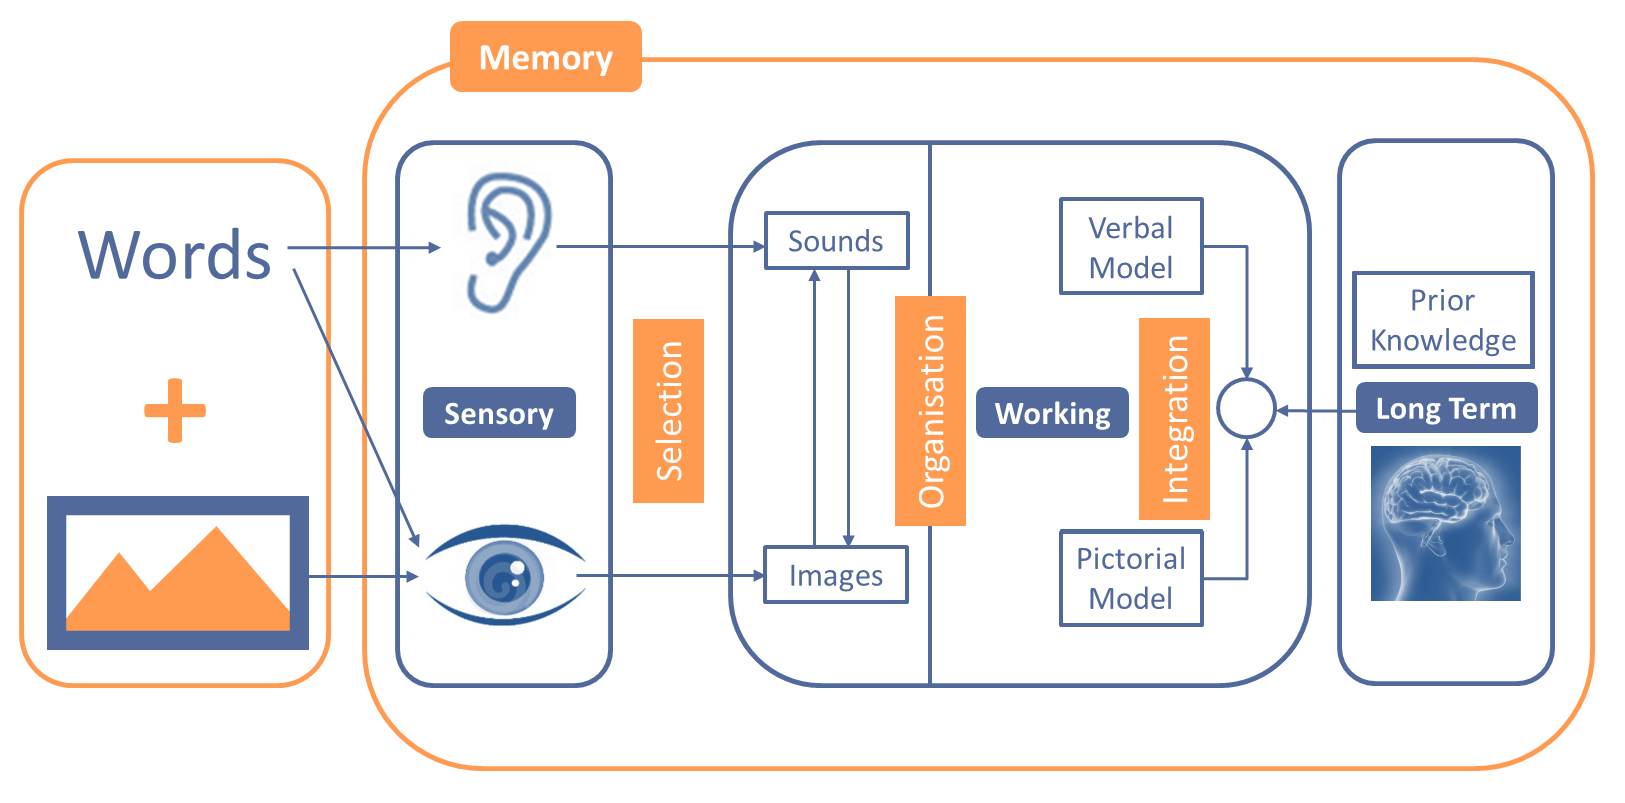 sales-presentations-how-the-memory-works.png